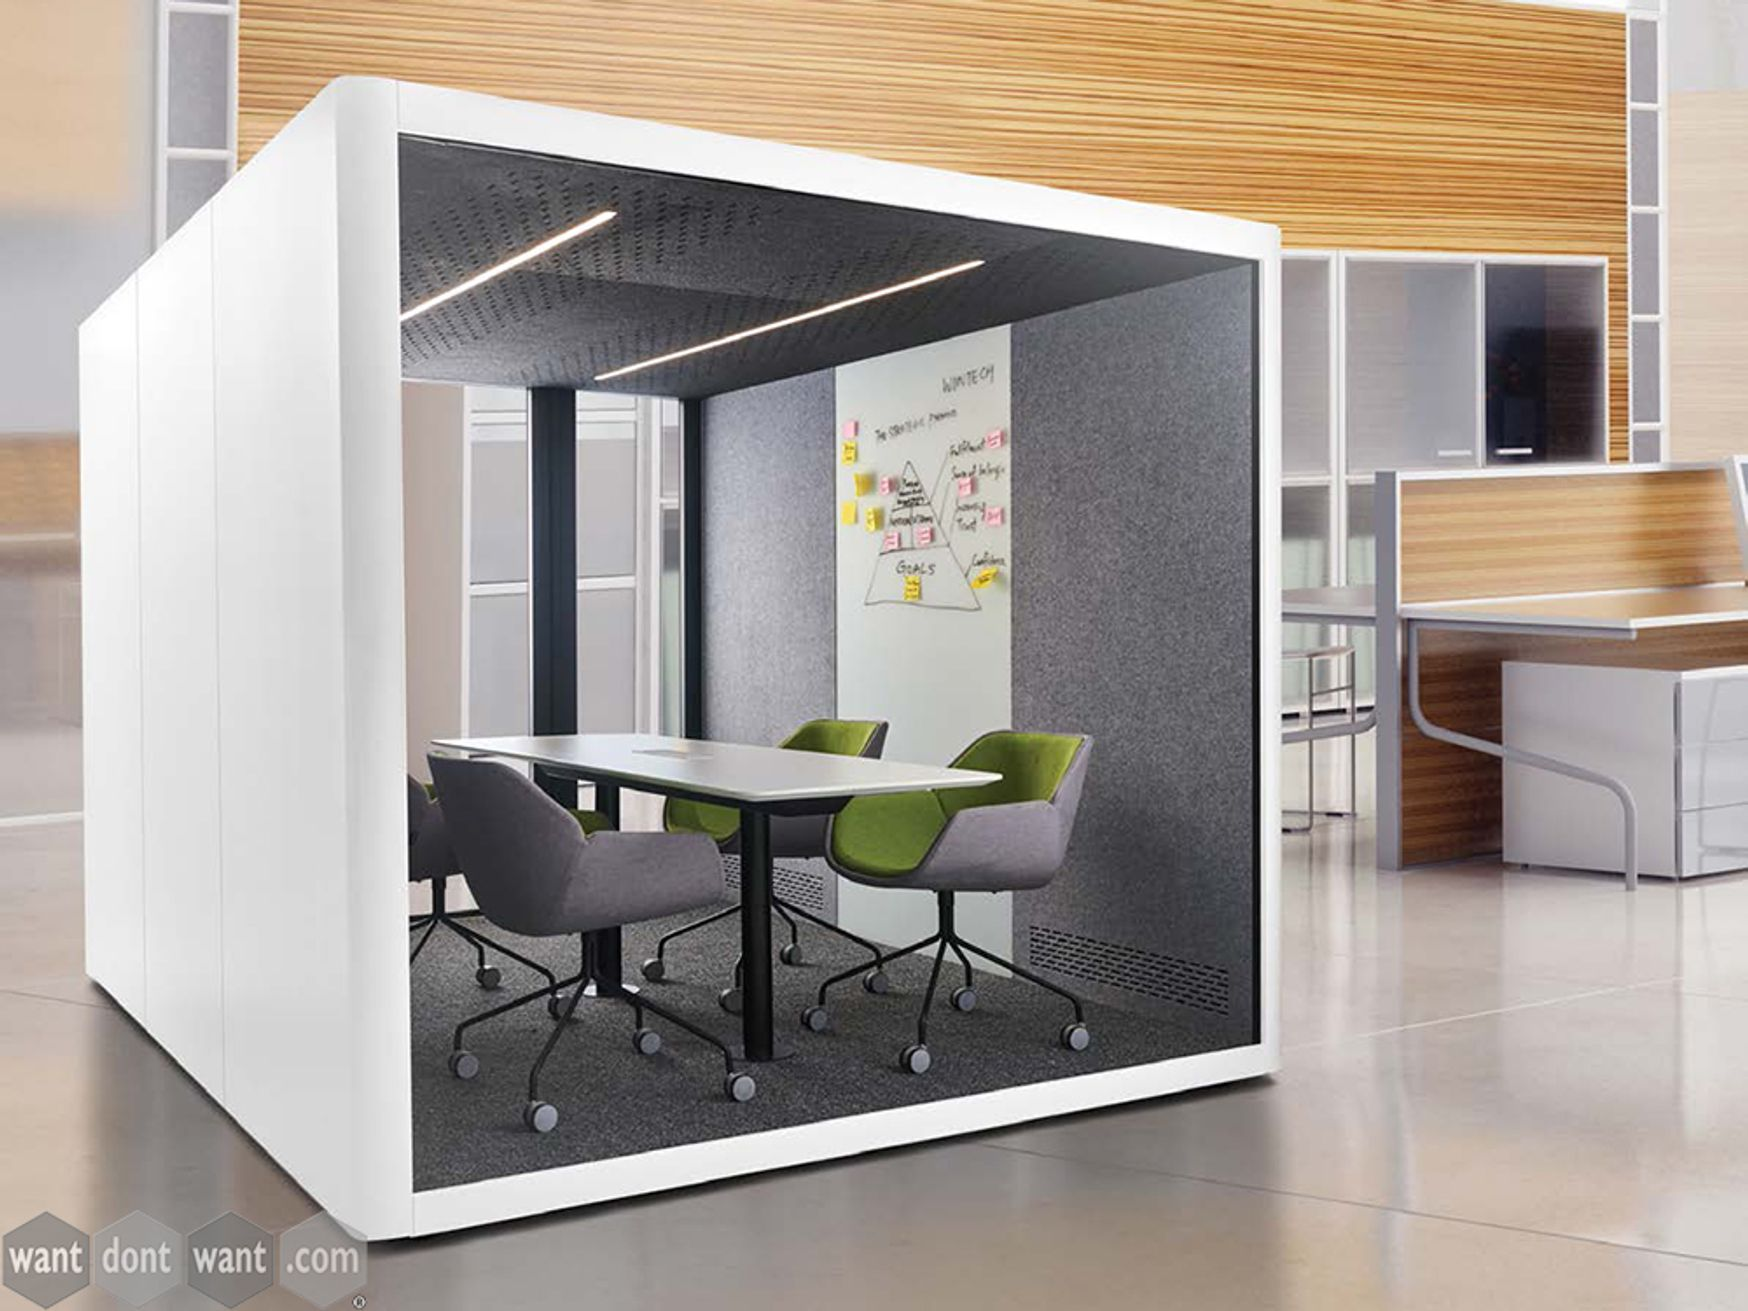 Brand New 6-Person Acoustic Meeting Pod